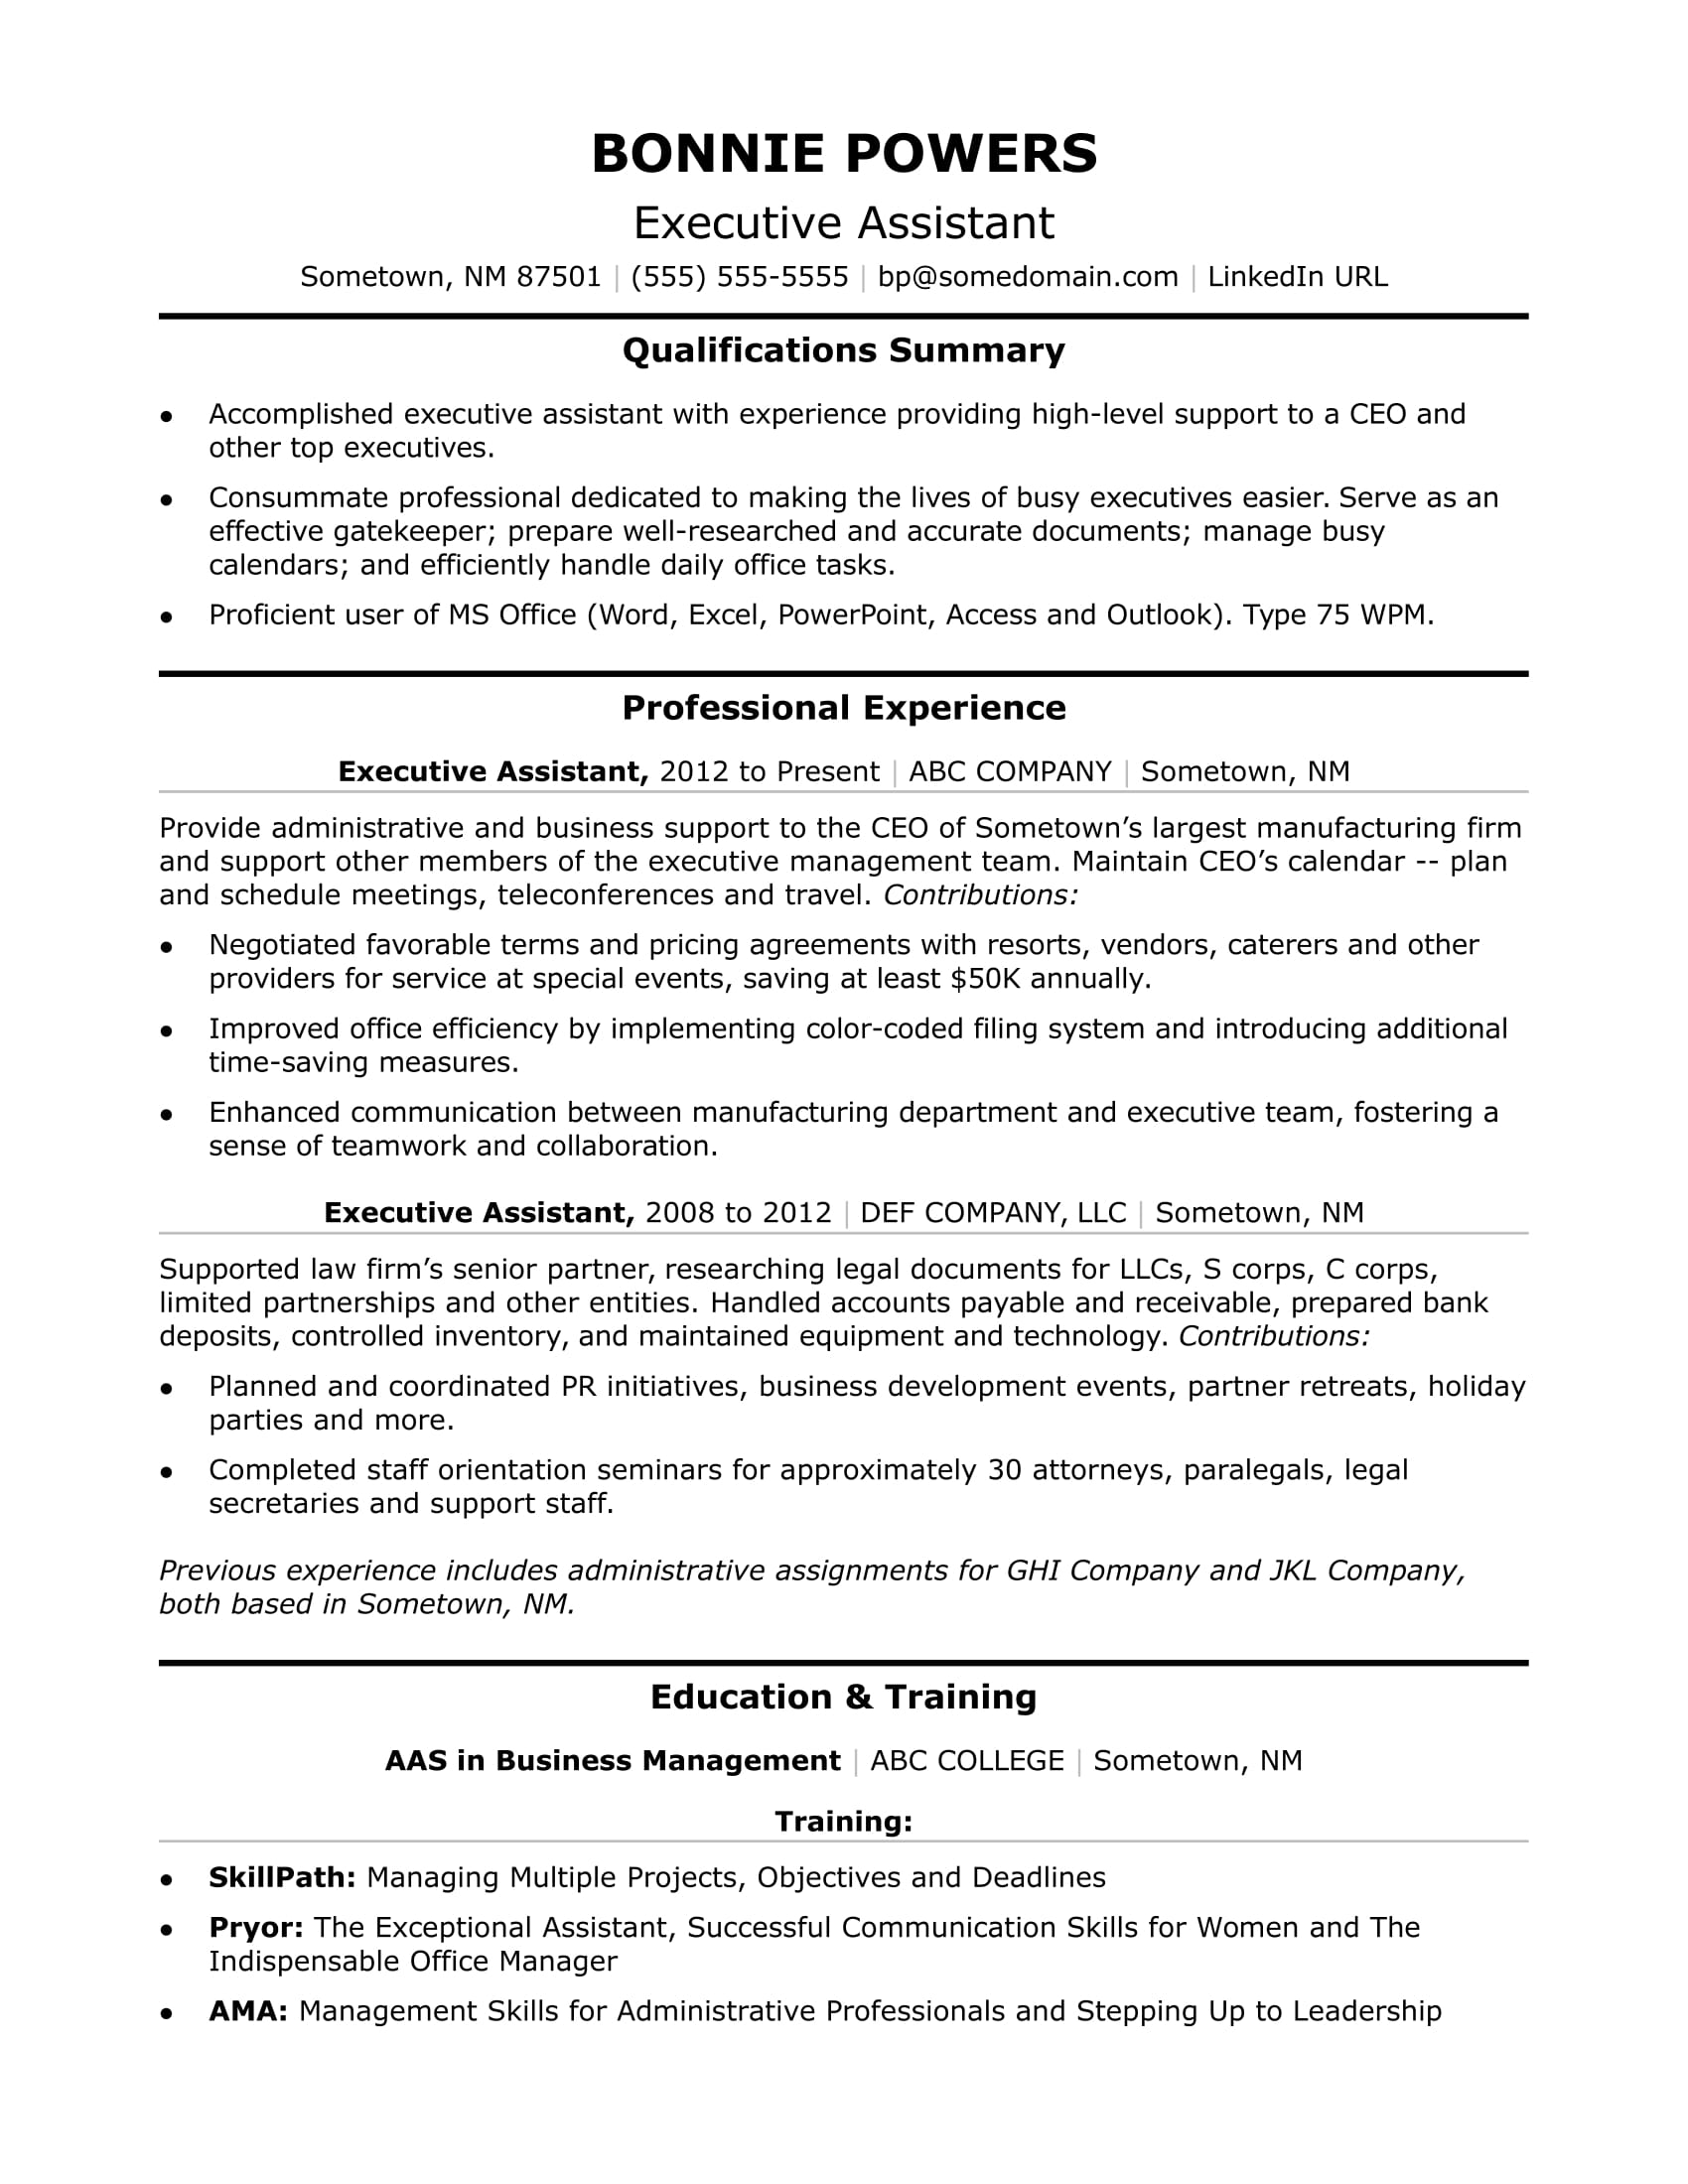 Executive Administrative Assistant Resume Sample  Examples Of Ceo Resumes